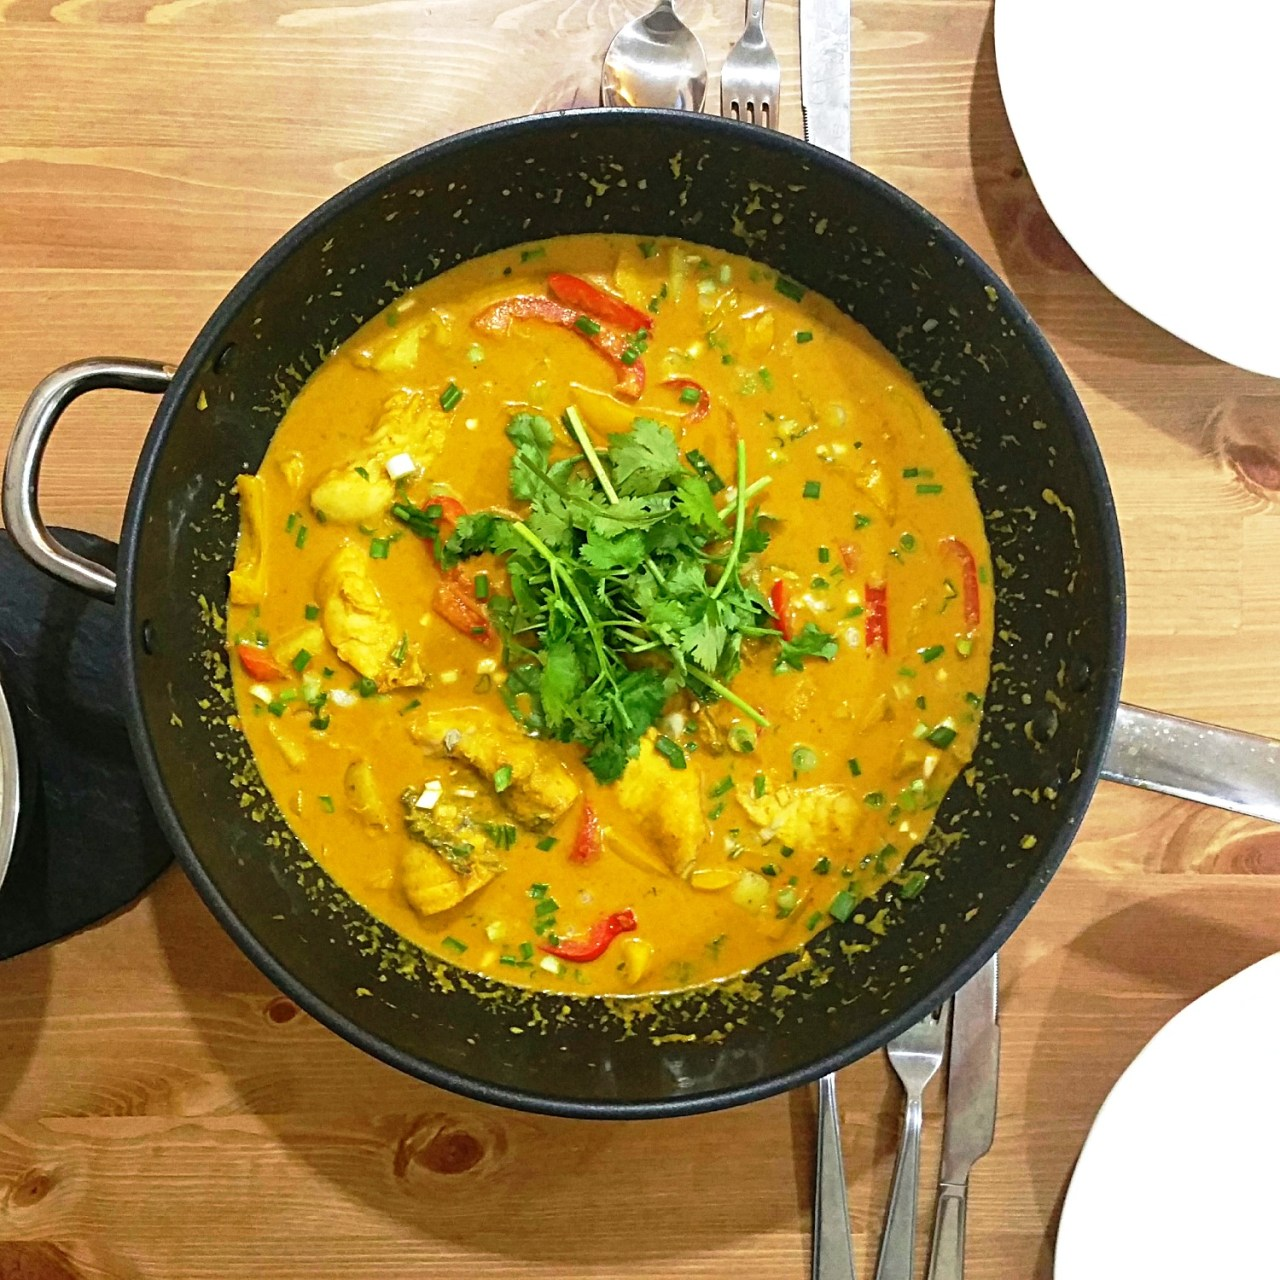 Hoki poached in yellow curry with potatoes and bell peppers